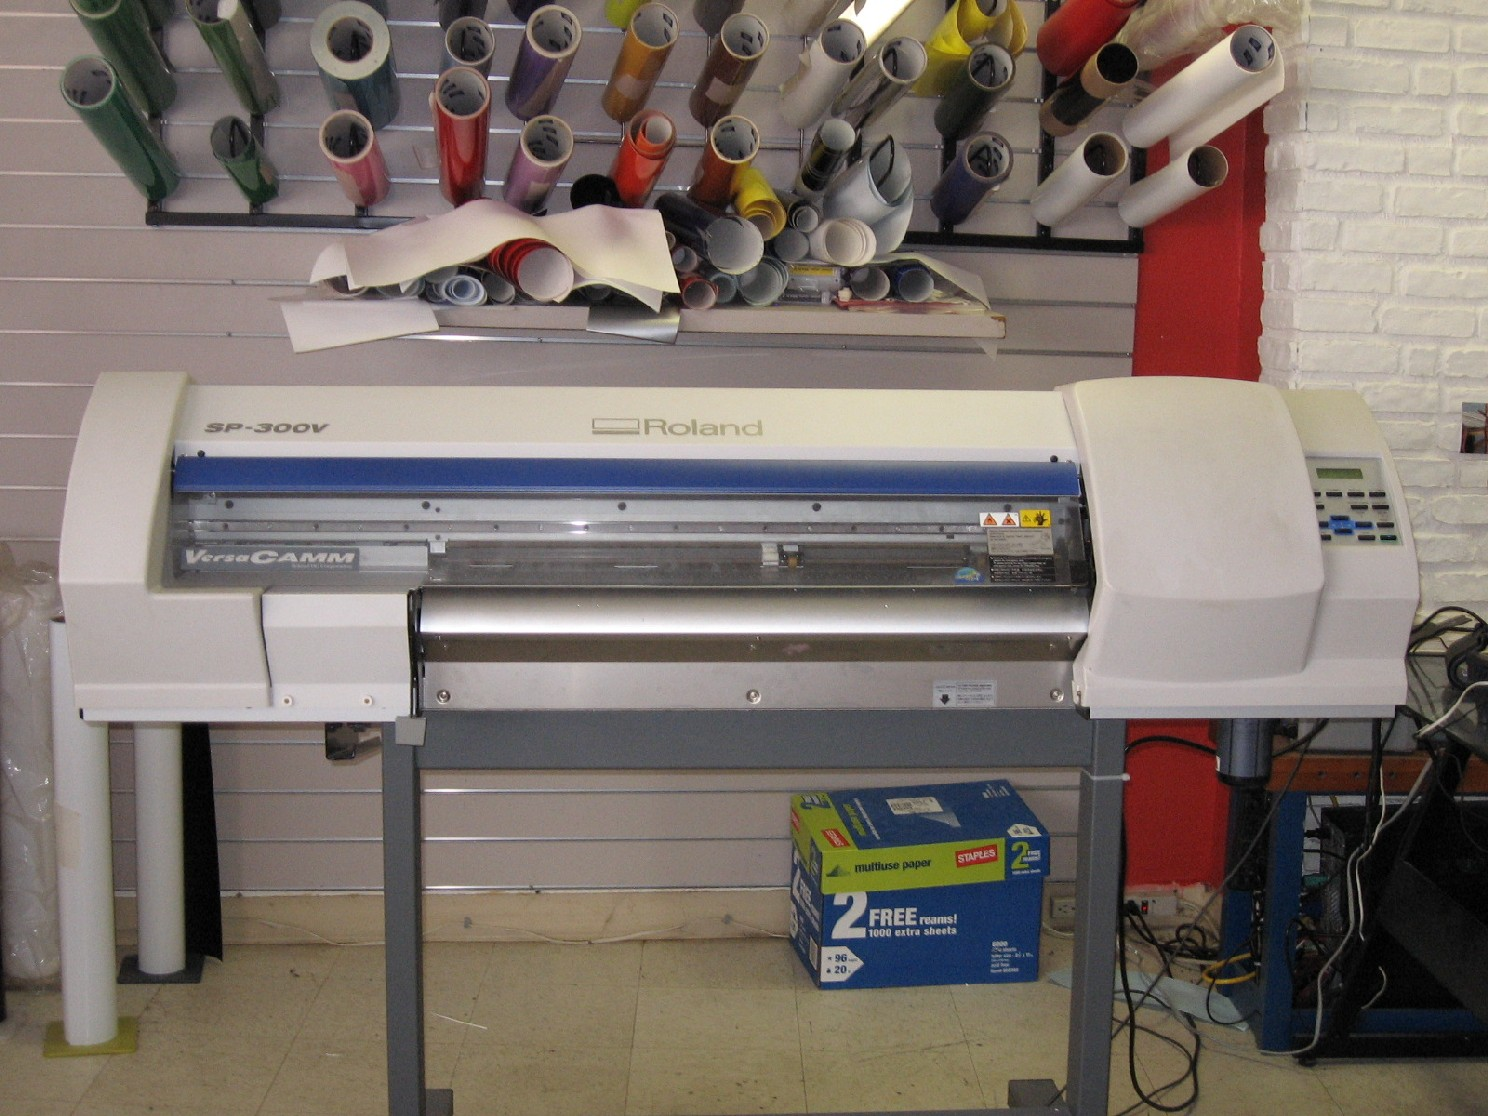 Roland Sp300v Wide Format Printer Cutter W Pc And Software